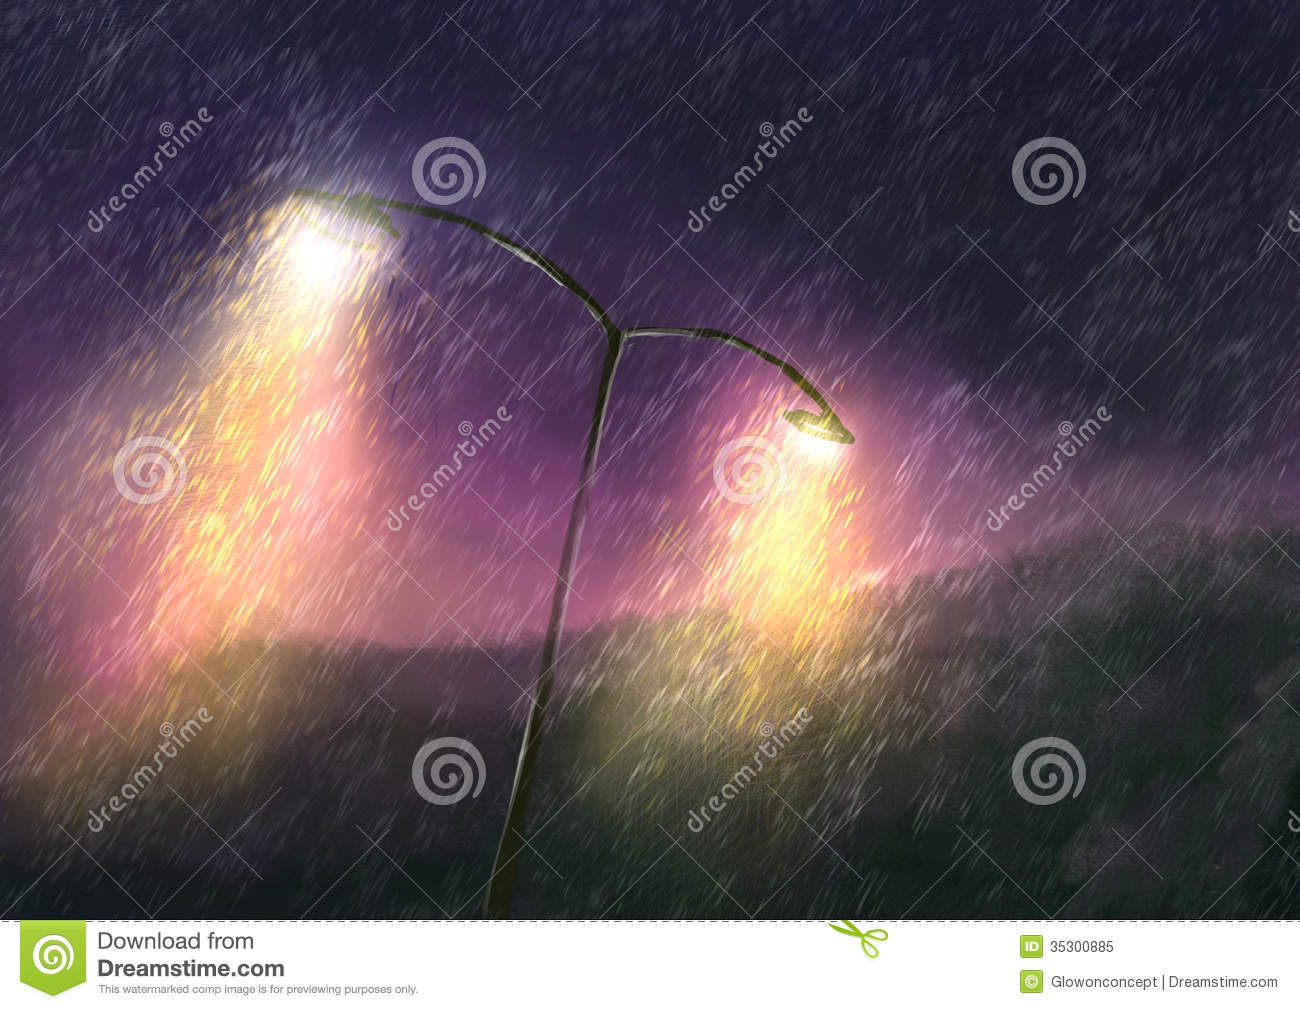 Download Rainy Day At Night With Beautiful Lighting Stock Illustration - Illustration of pattern, glow: 35300885